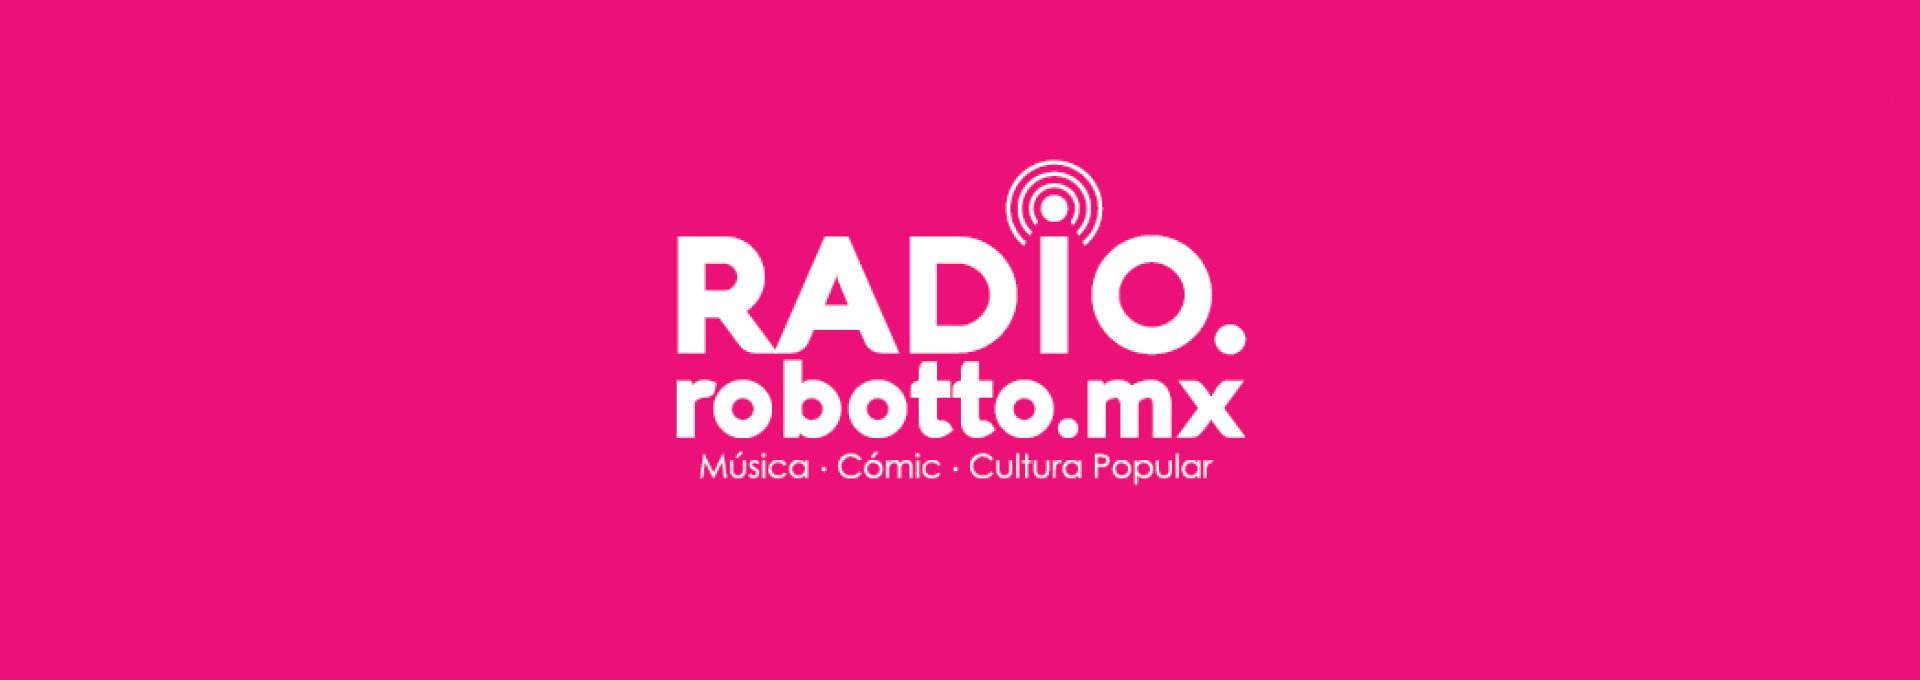 Radio Robotto